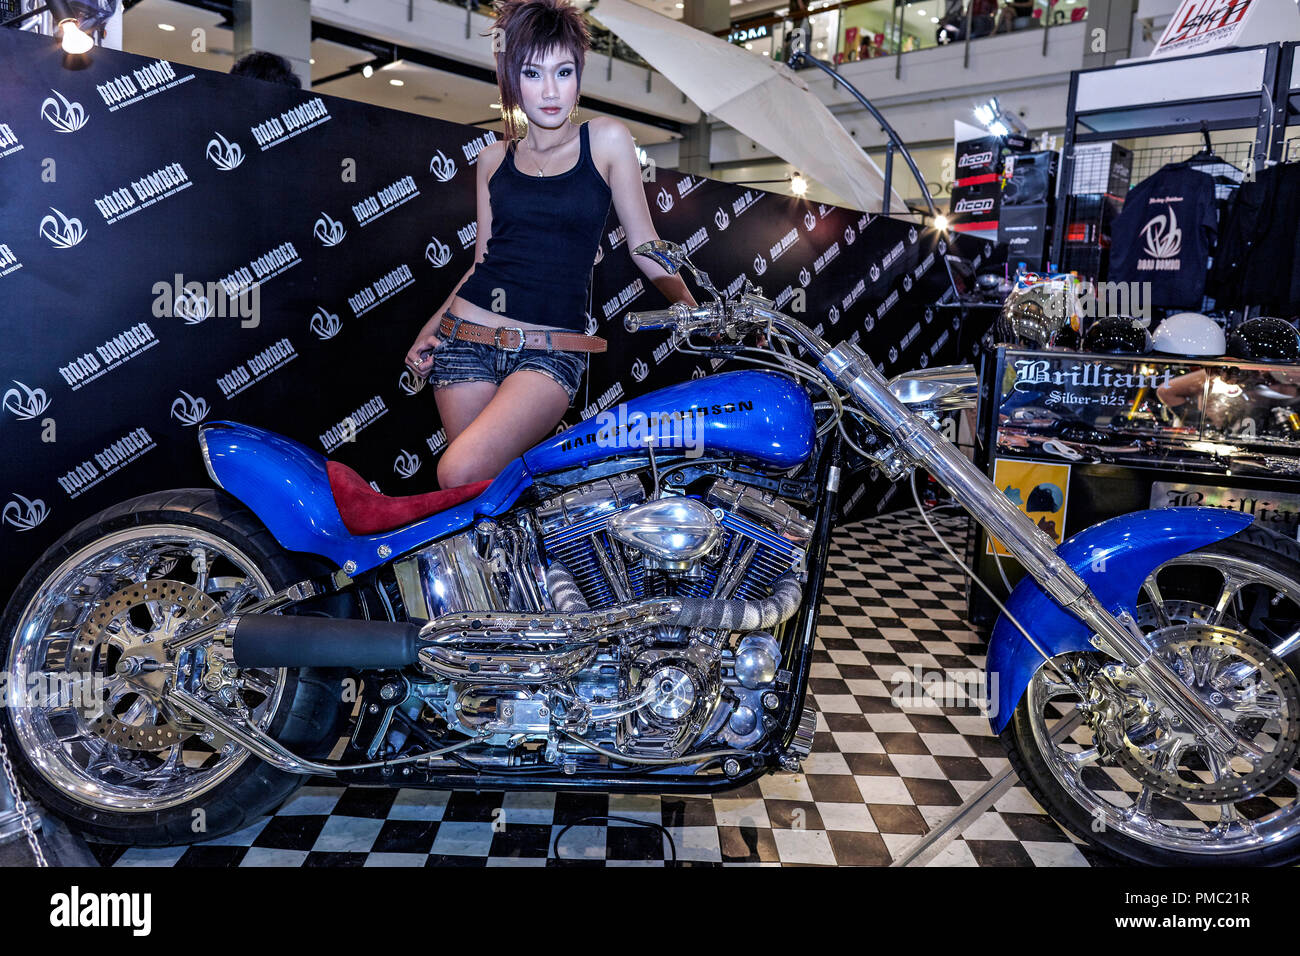 Harley Davidson customized chopper motorcycle and female model at the annual Bangkok motorcycle show. Thailand S. E. Asia - Stock Image